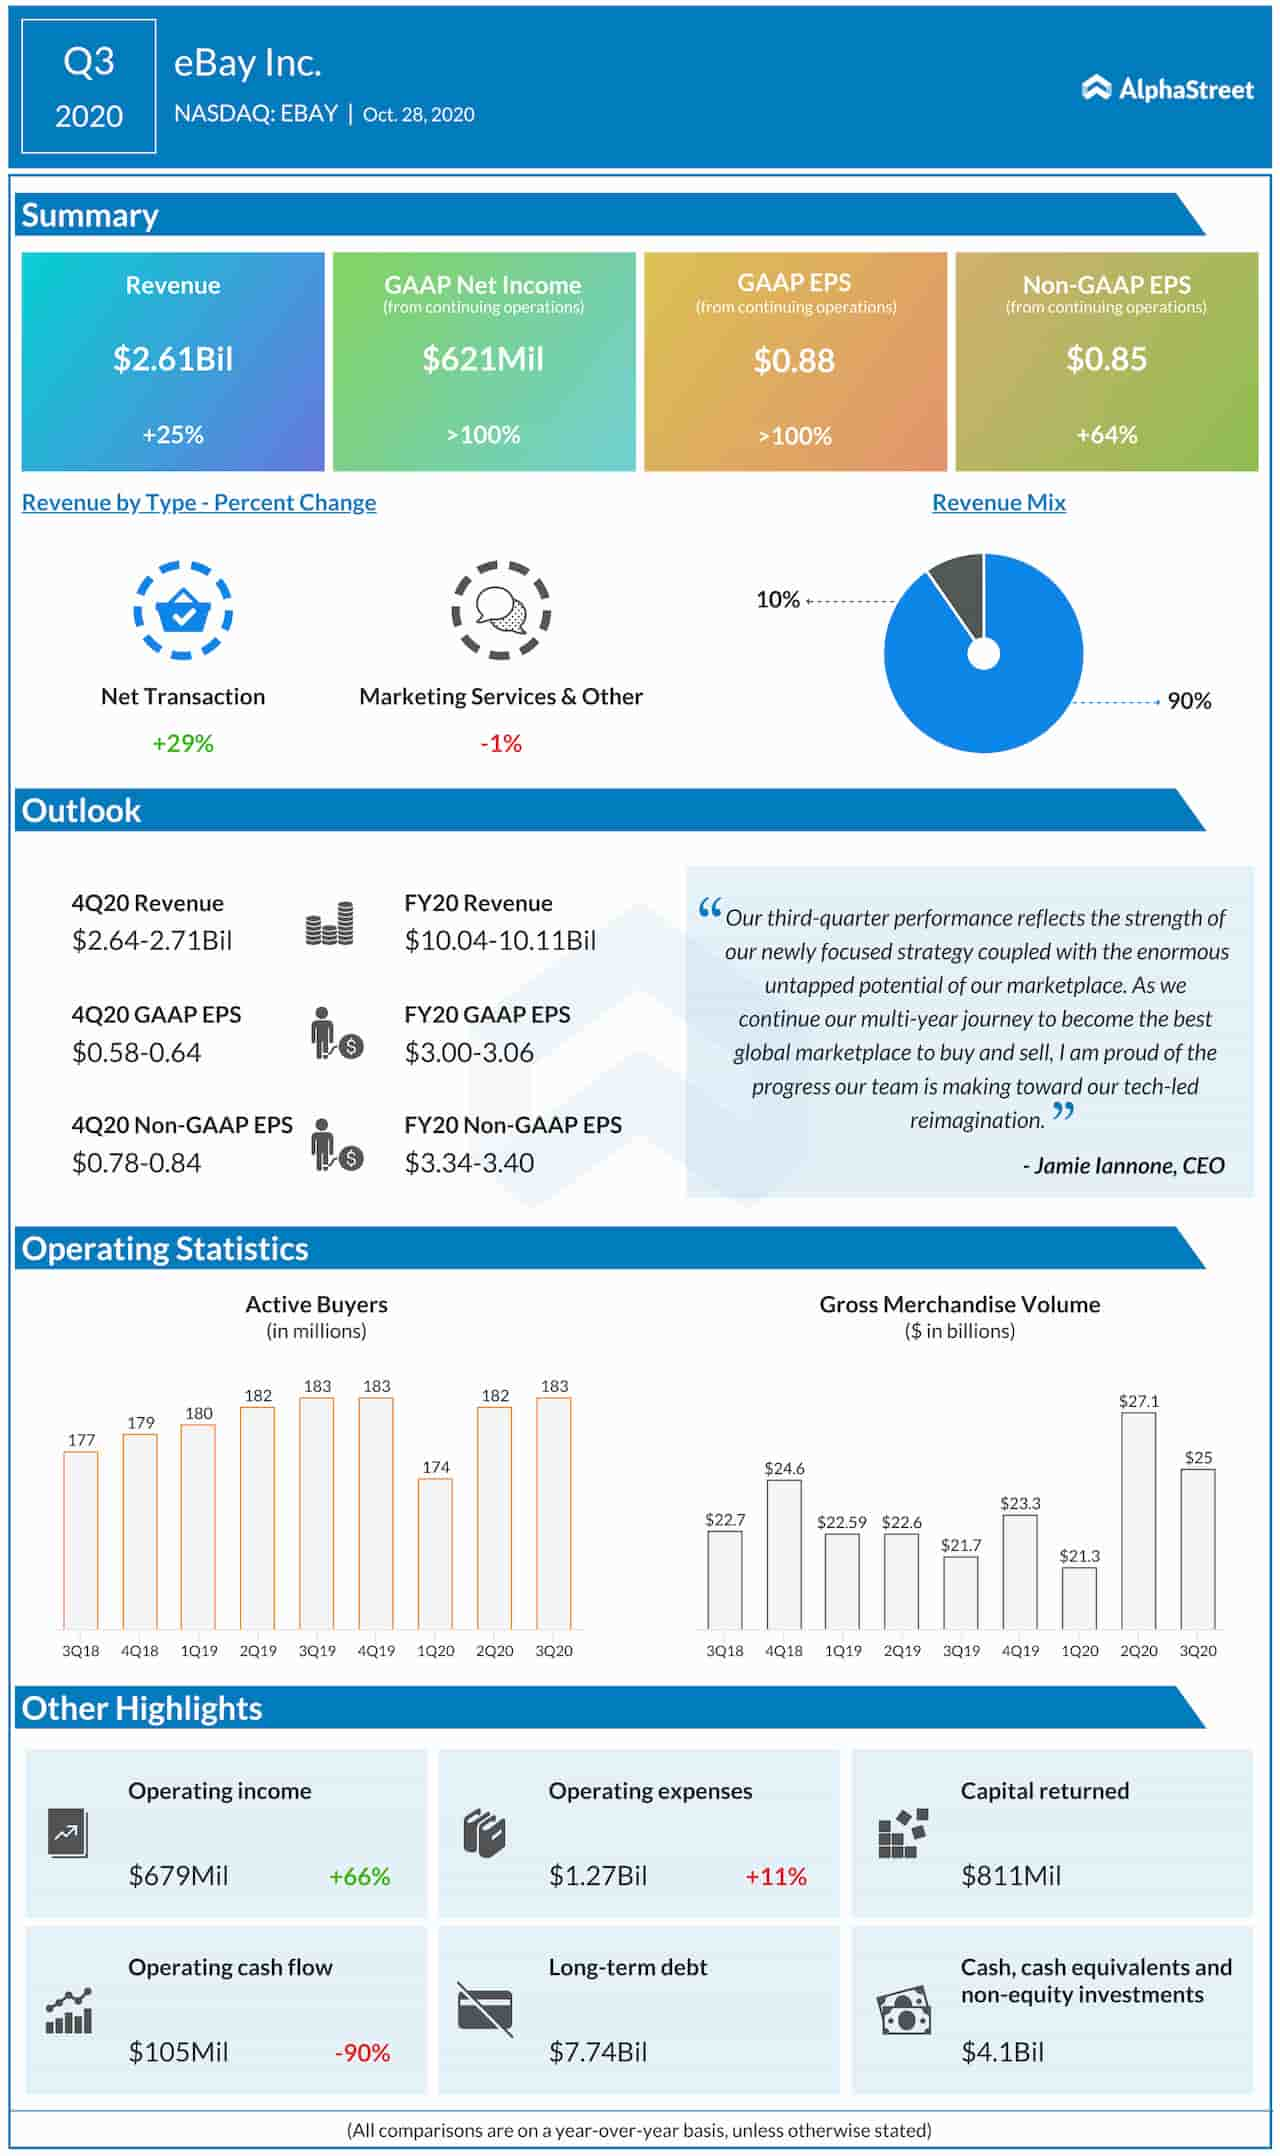 eBay Q3 2020 Earnings Infographic